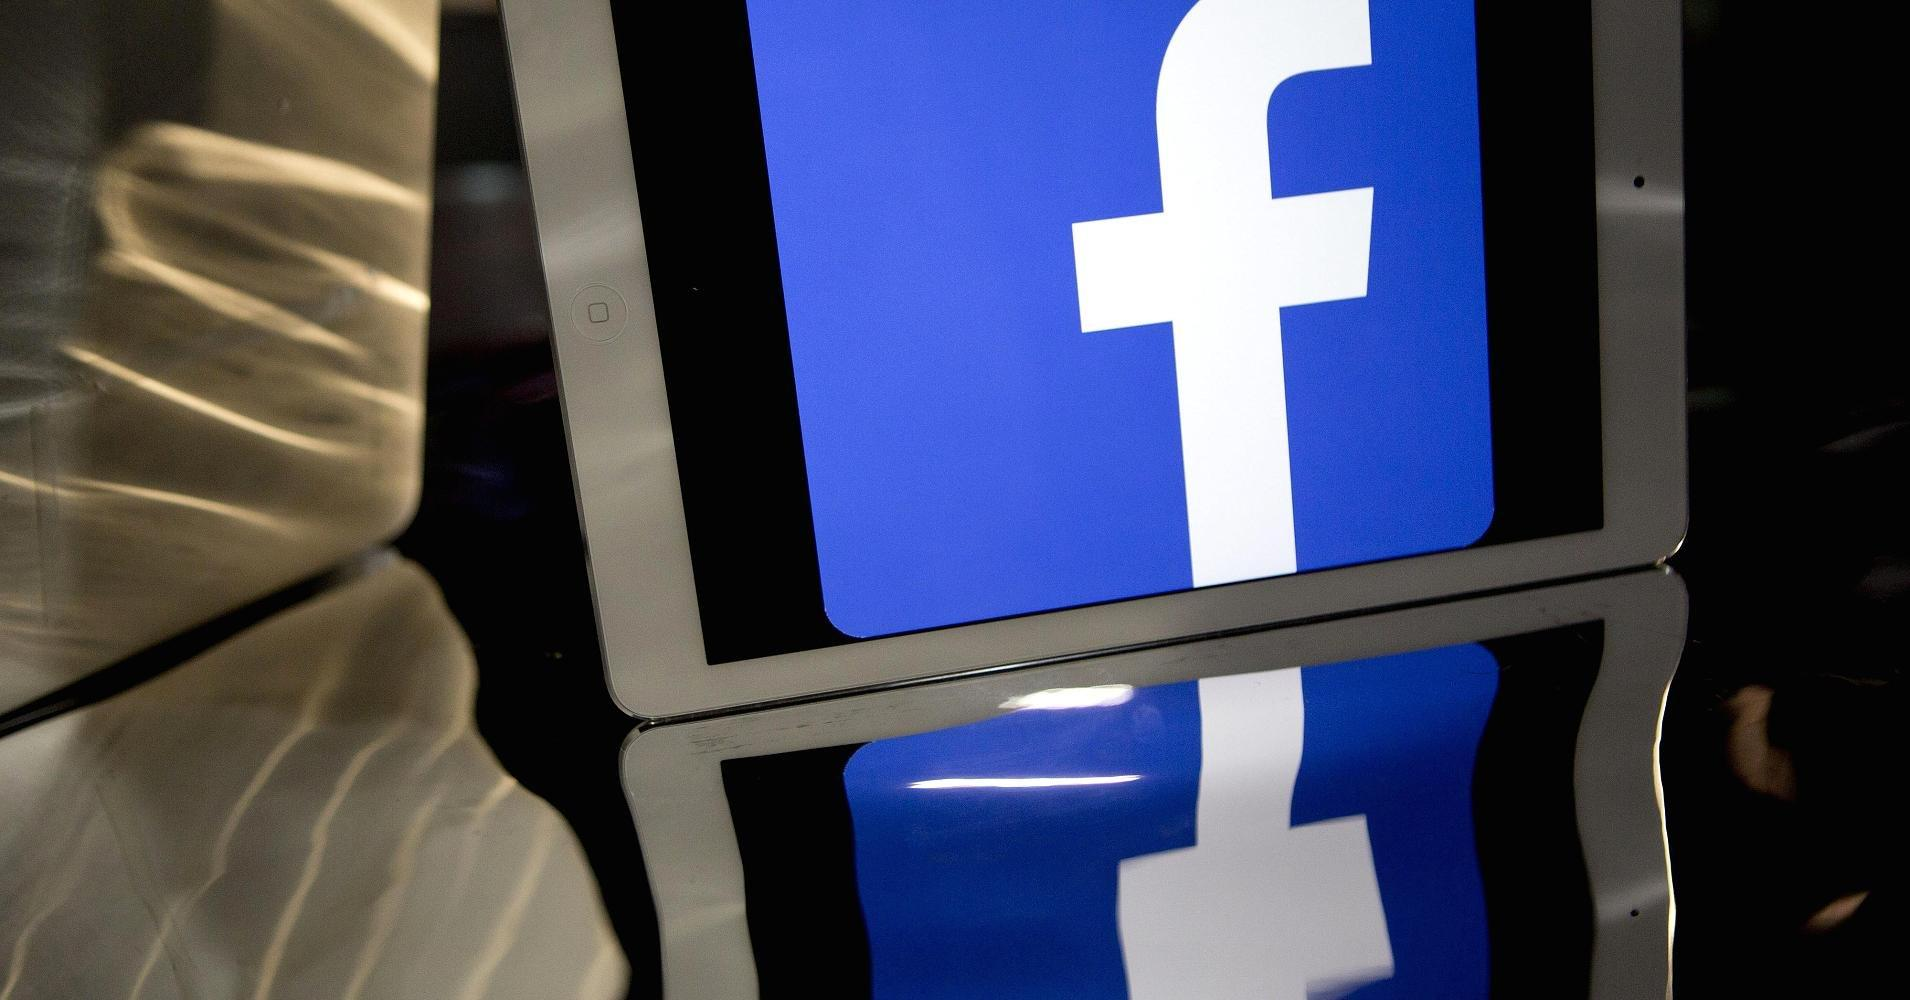 Facebook goes down, denies cyberattack